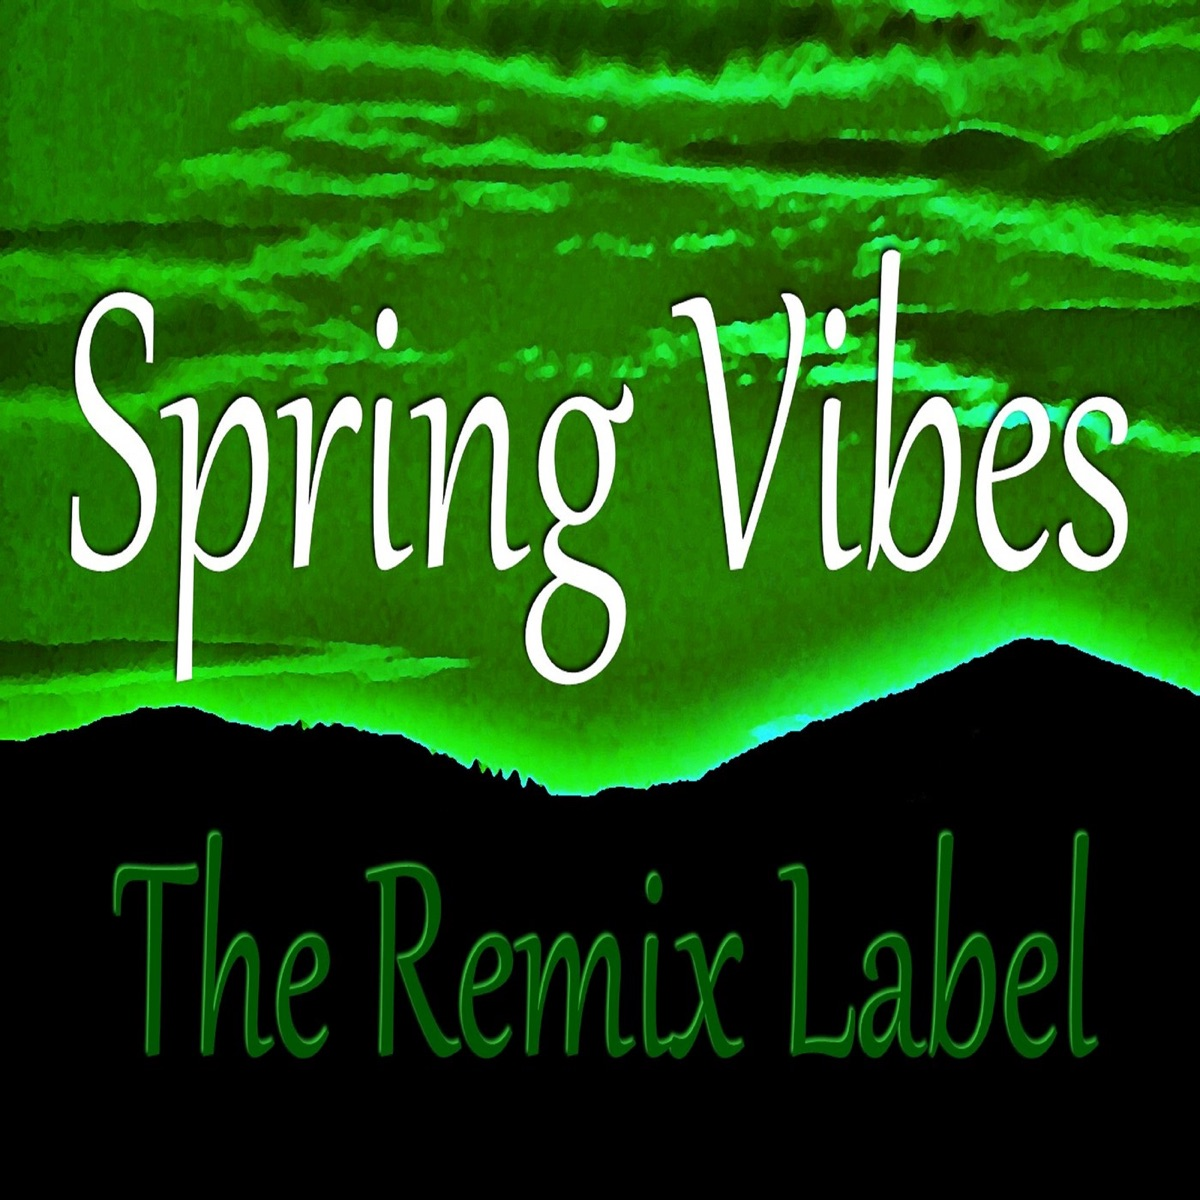 Spring Vibes Album Cover by Deephouse